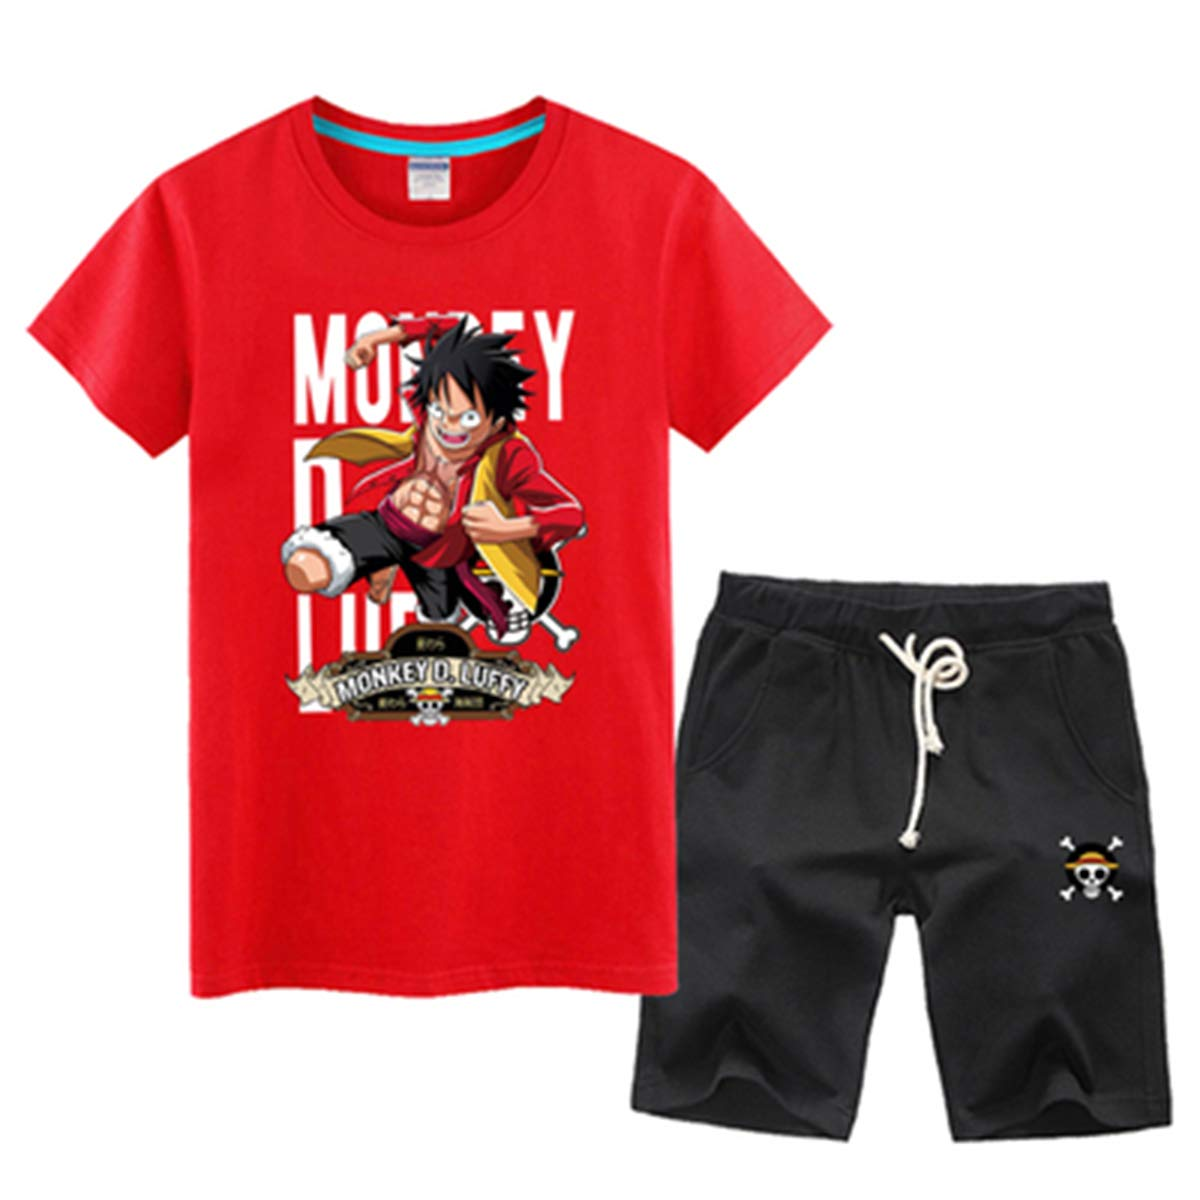 Anime One Piece Luffy T-shirt Tee Shirt Summer Casual Wear Loose And Comfortable